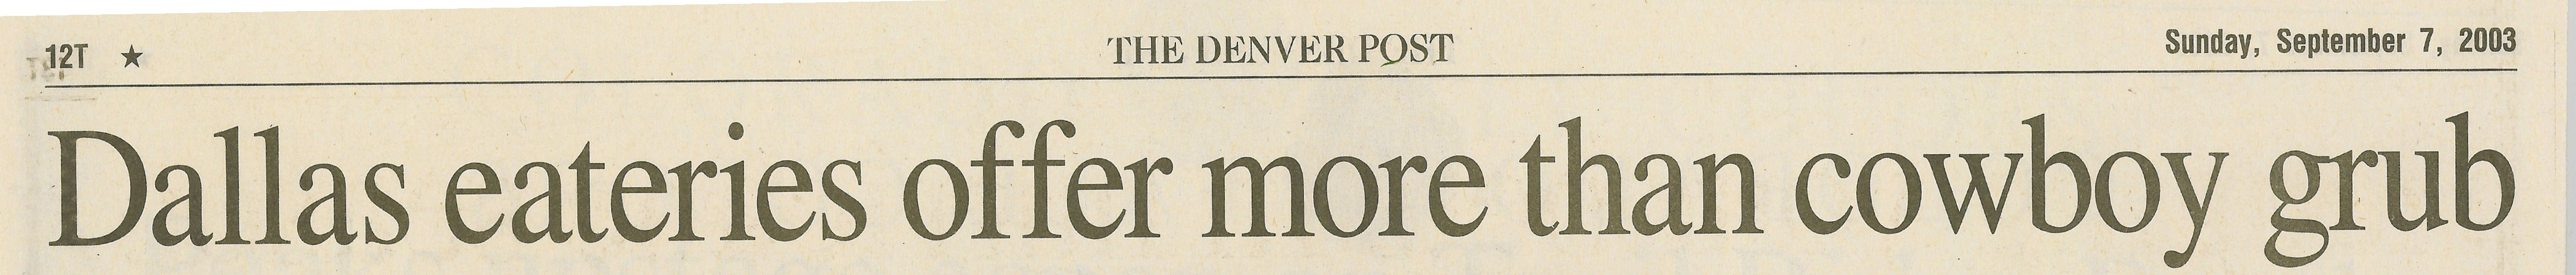 42 Denver Post Title 2